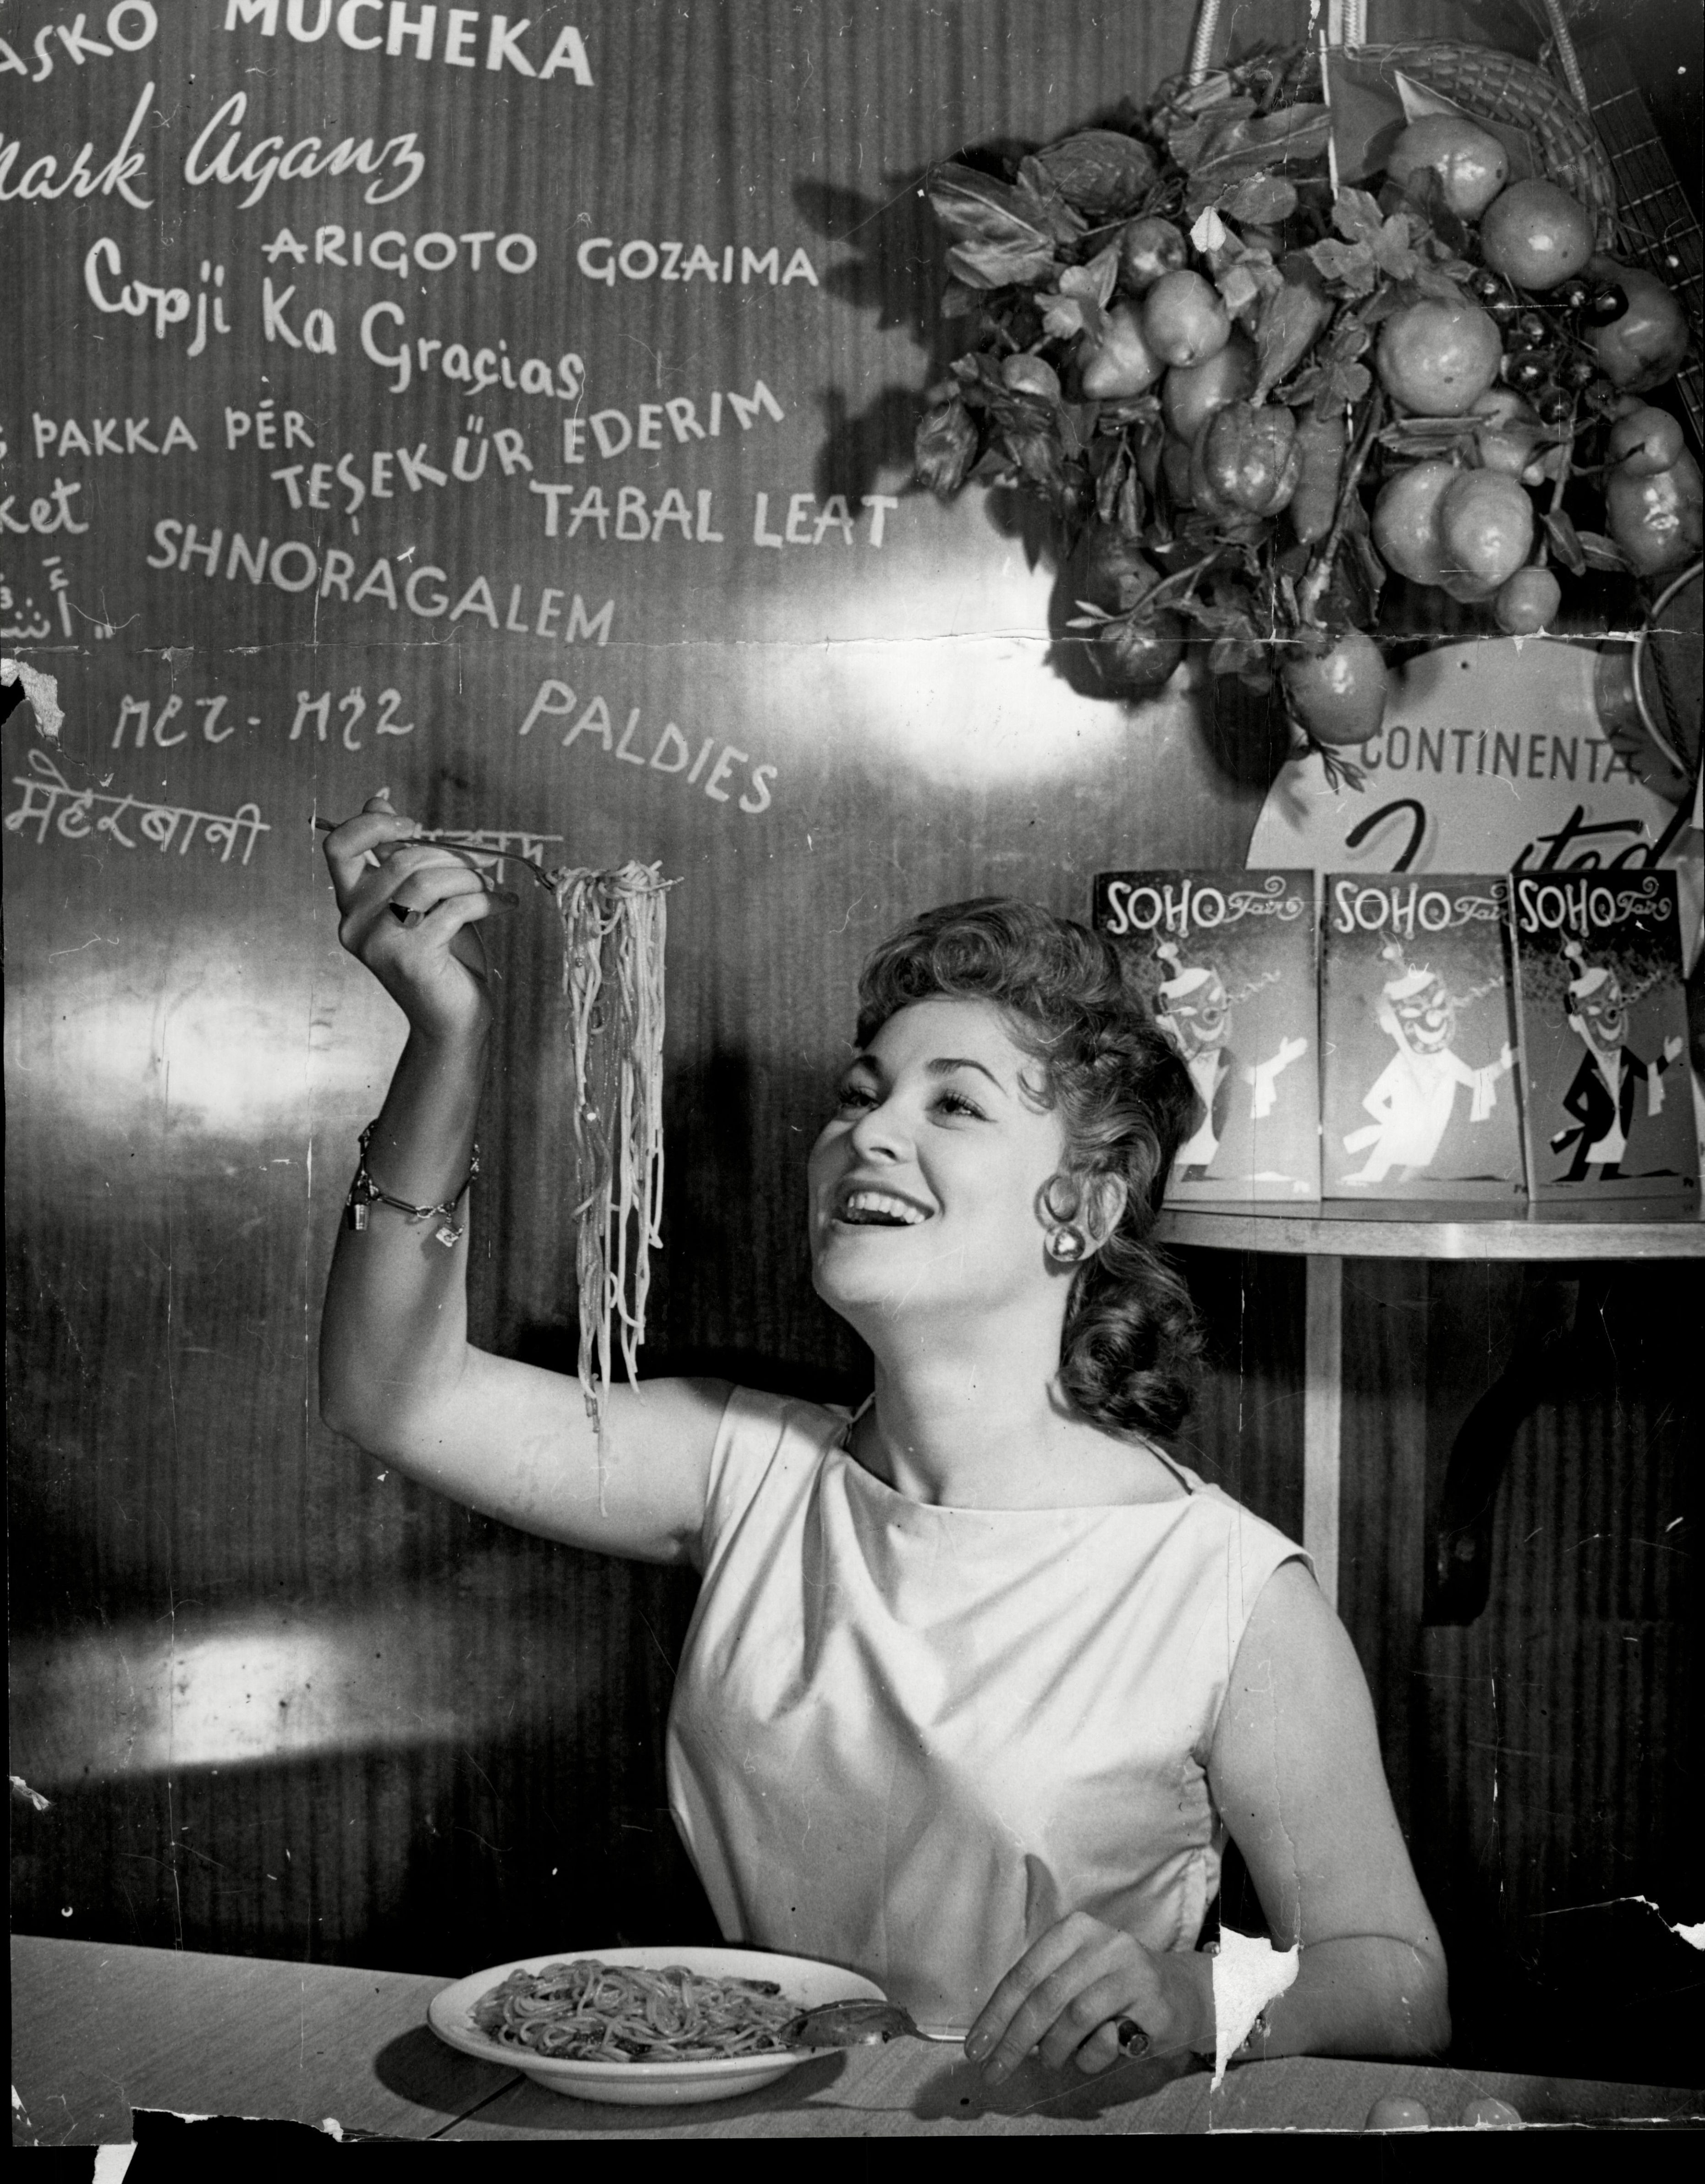 Soho's Fair Queen Andria Loran (real Name Maureen Smith) Tries Her Skill At Spaghetti Eating - A Contest Of The Art Will Be Held In Soho London. Soho's Fair Queen. July 1956. Photo by ANL/REX/Shutterstock